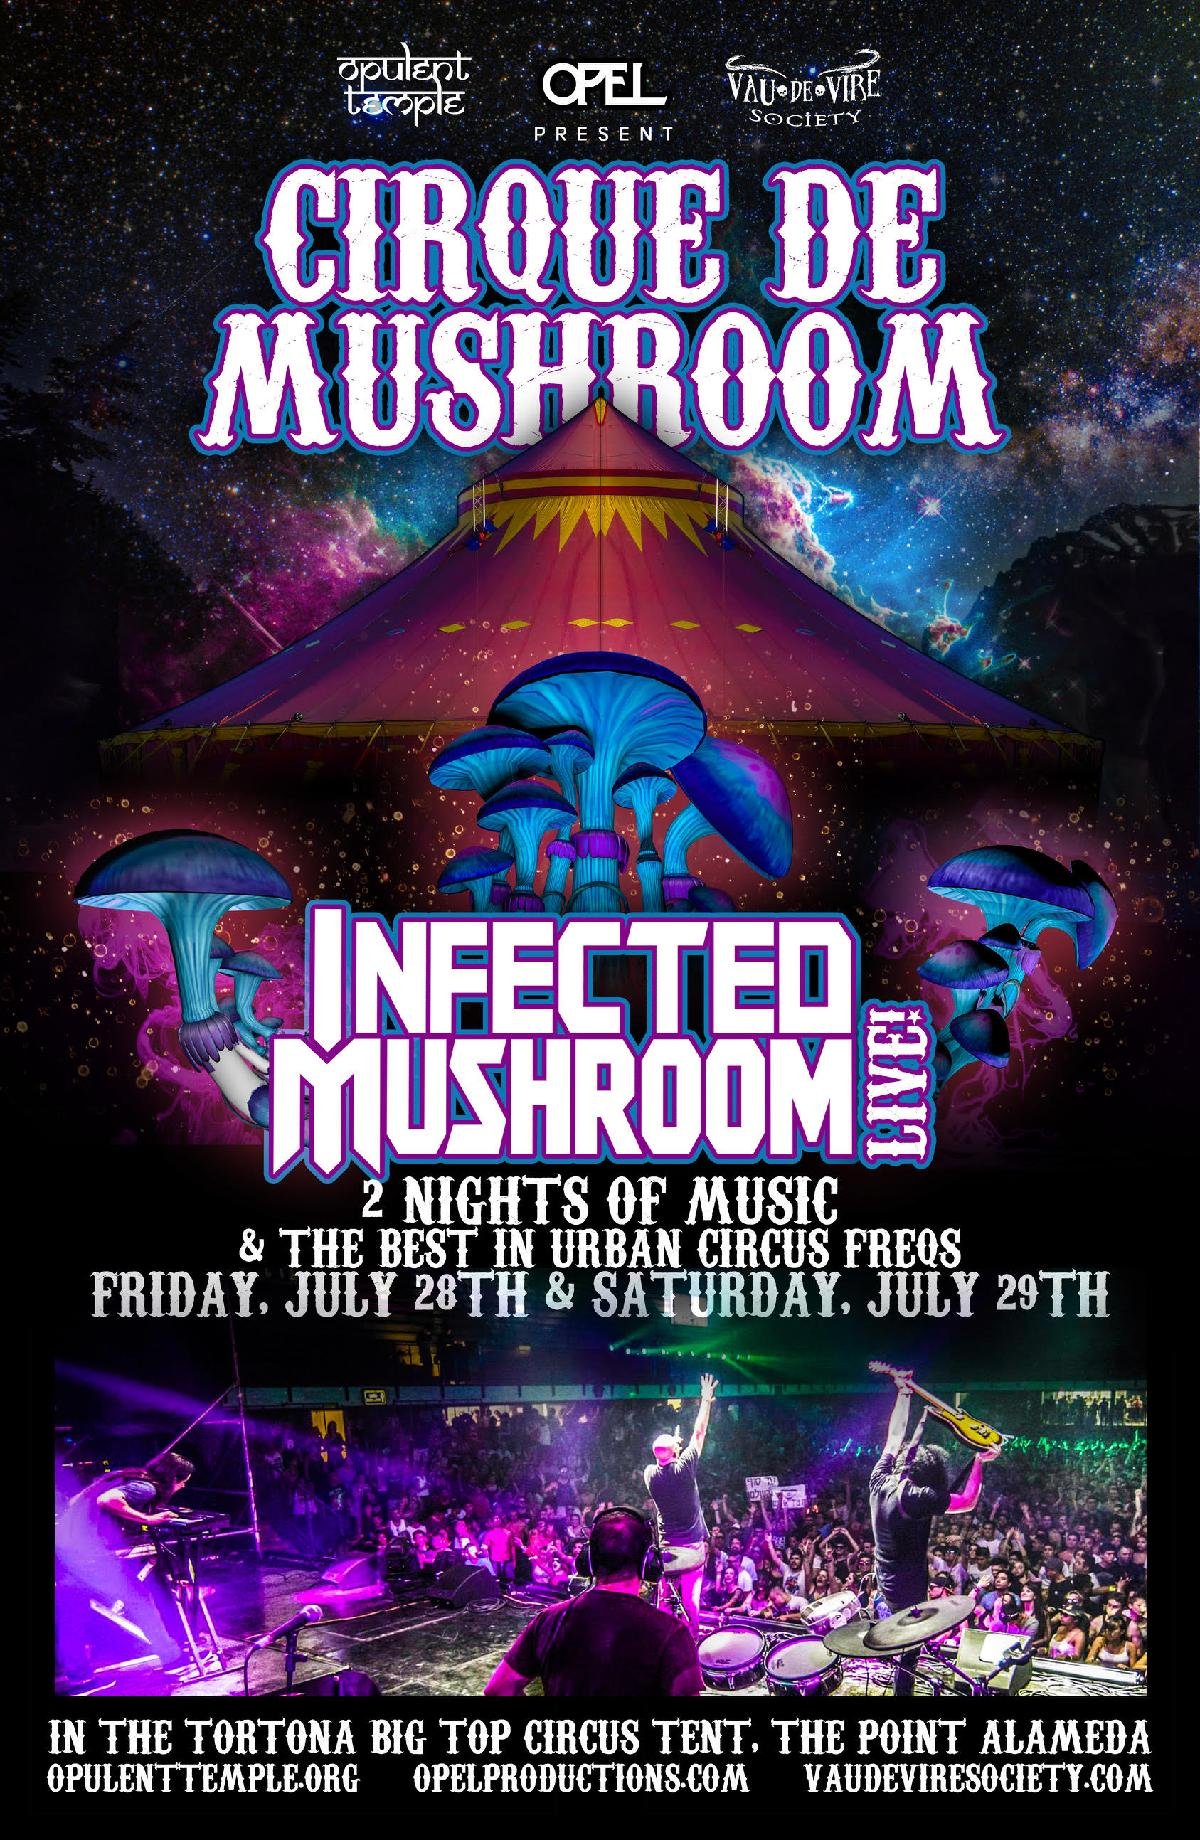 Cirque de Mushroom:  Saturday Night